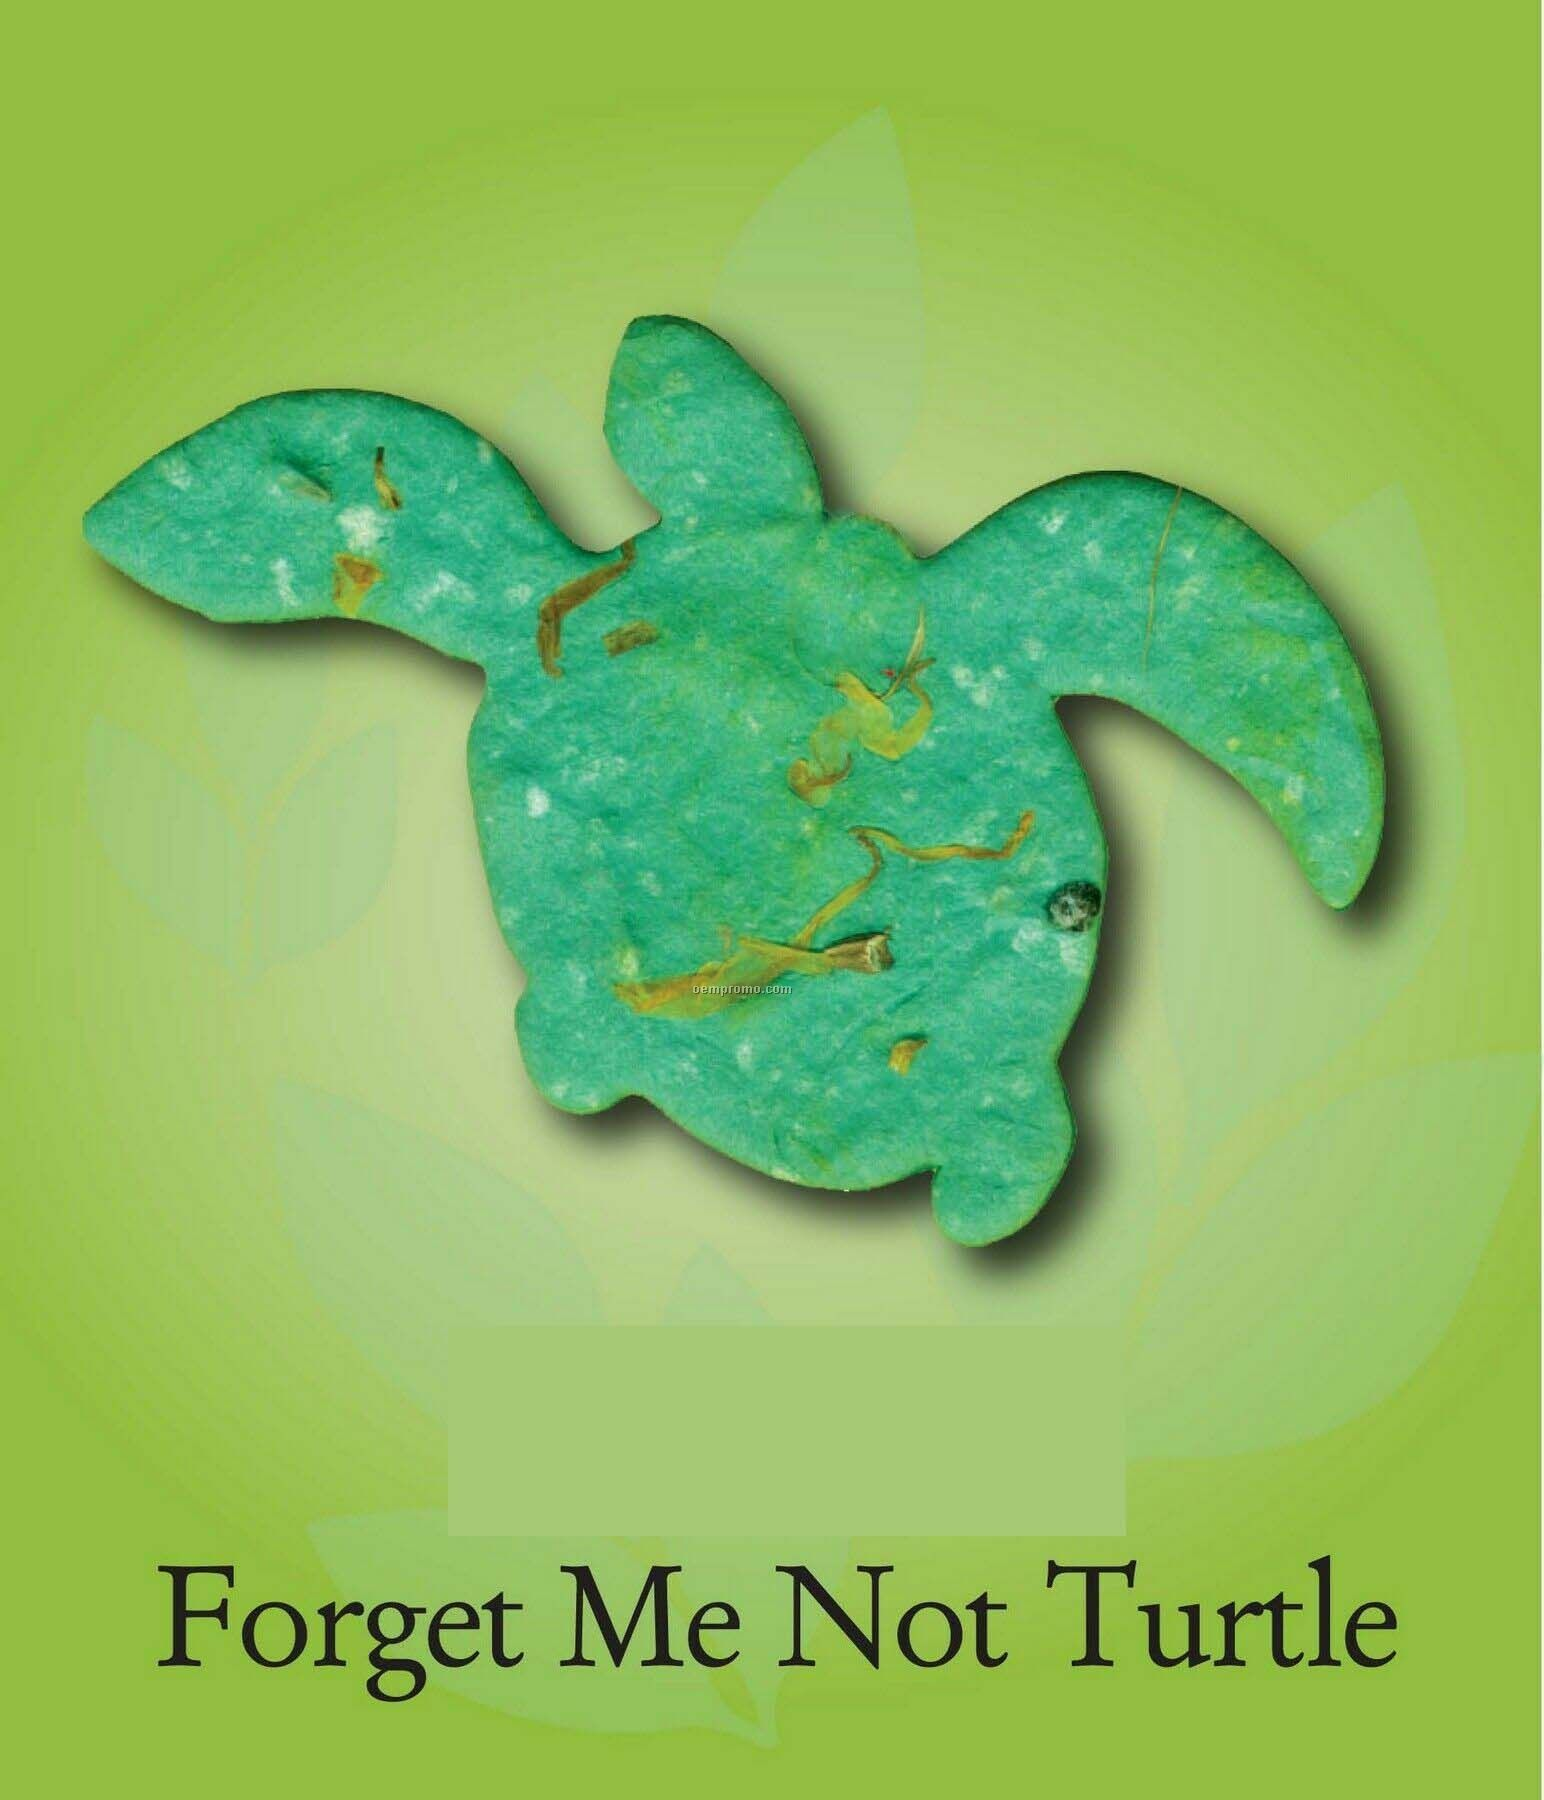 Forget Me Not Turtle Ornament With Embedded Seed